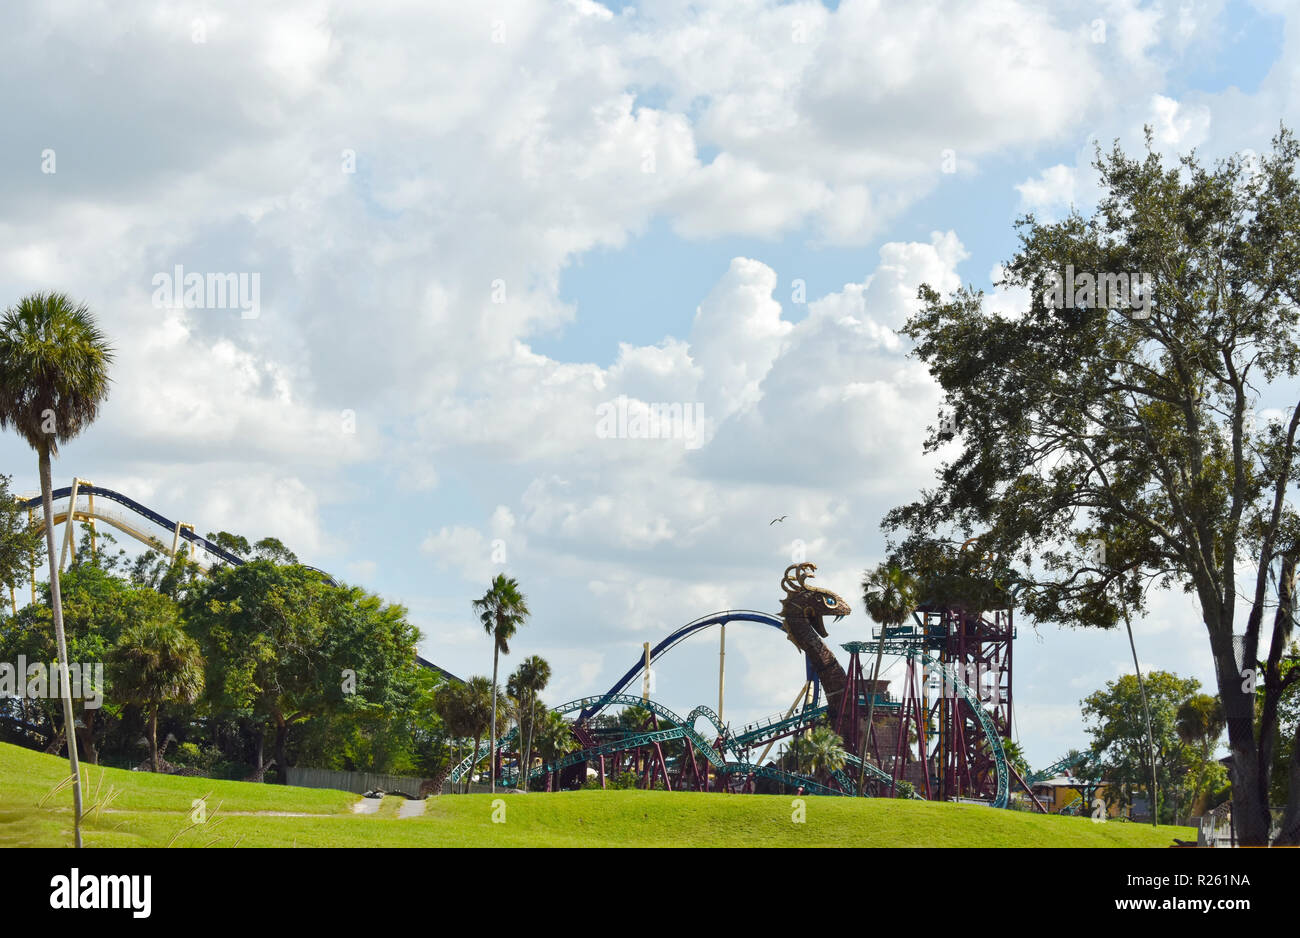 Tampa, Florida. October 06, 2018 Cobras Hunt Rollercoaster view from Serengetti Train at Bush Gardens Tampa Bay. - Stock Image